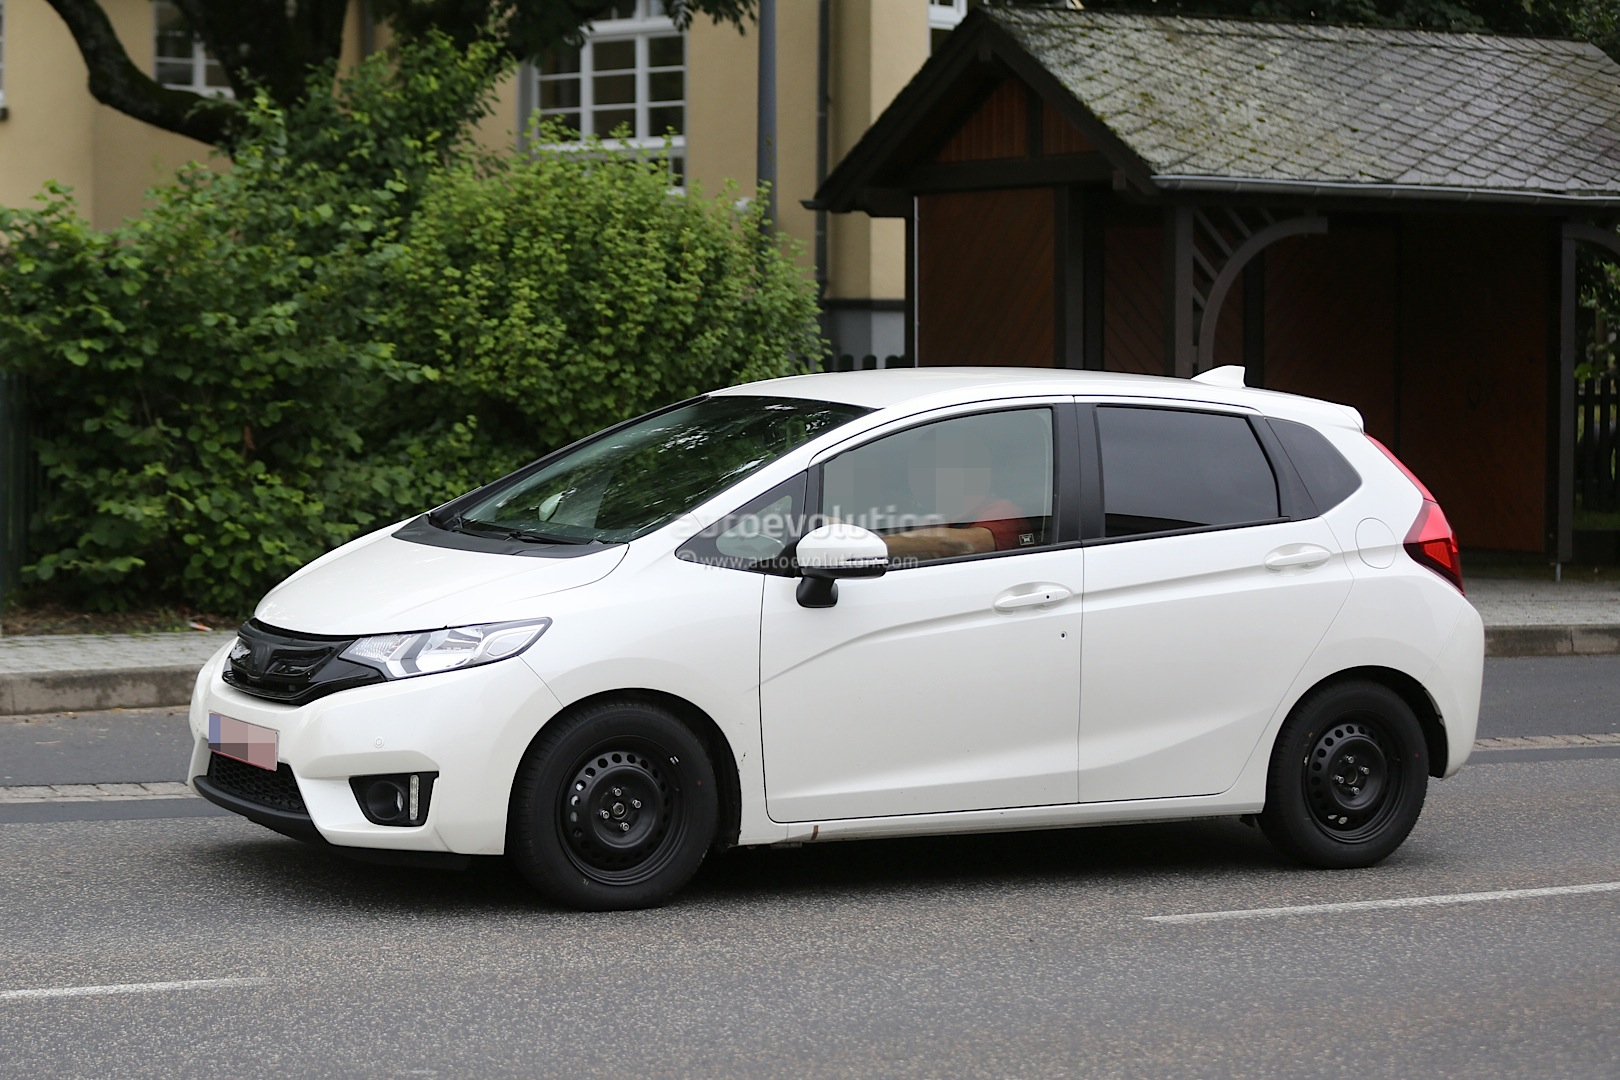 Spyshots: All-New 2015 Honda Jazz Testing in Europe for the First Time